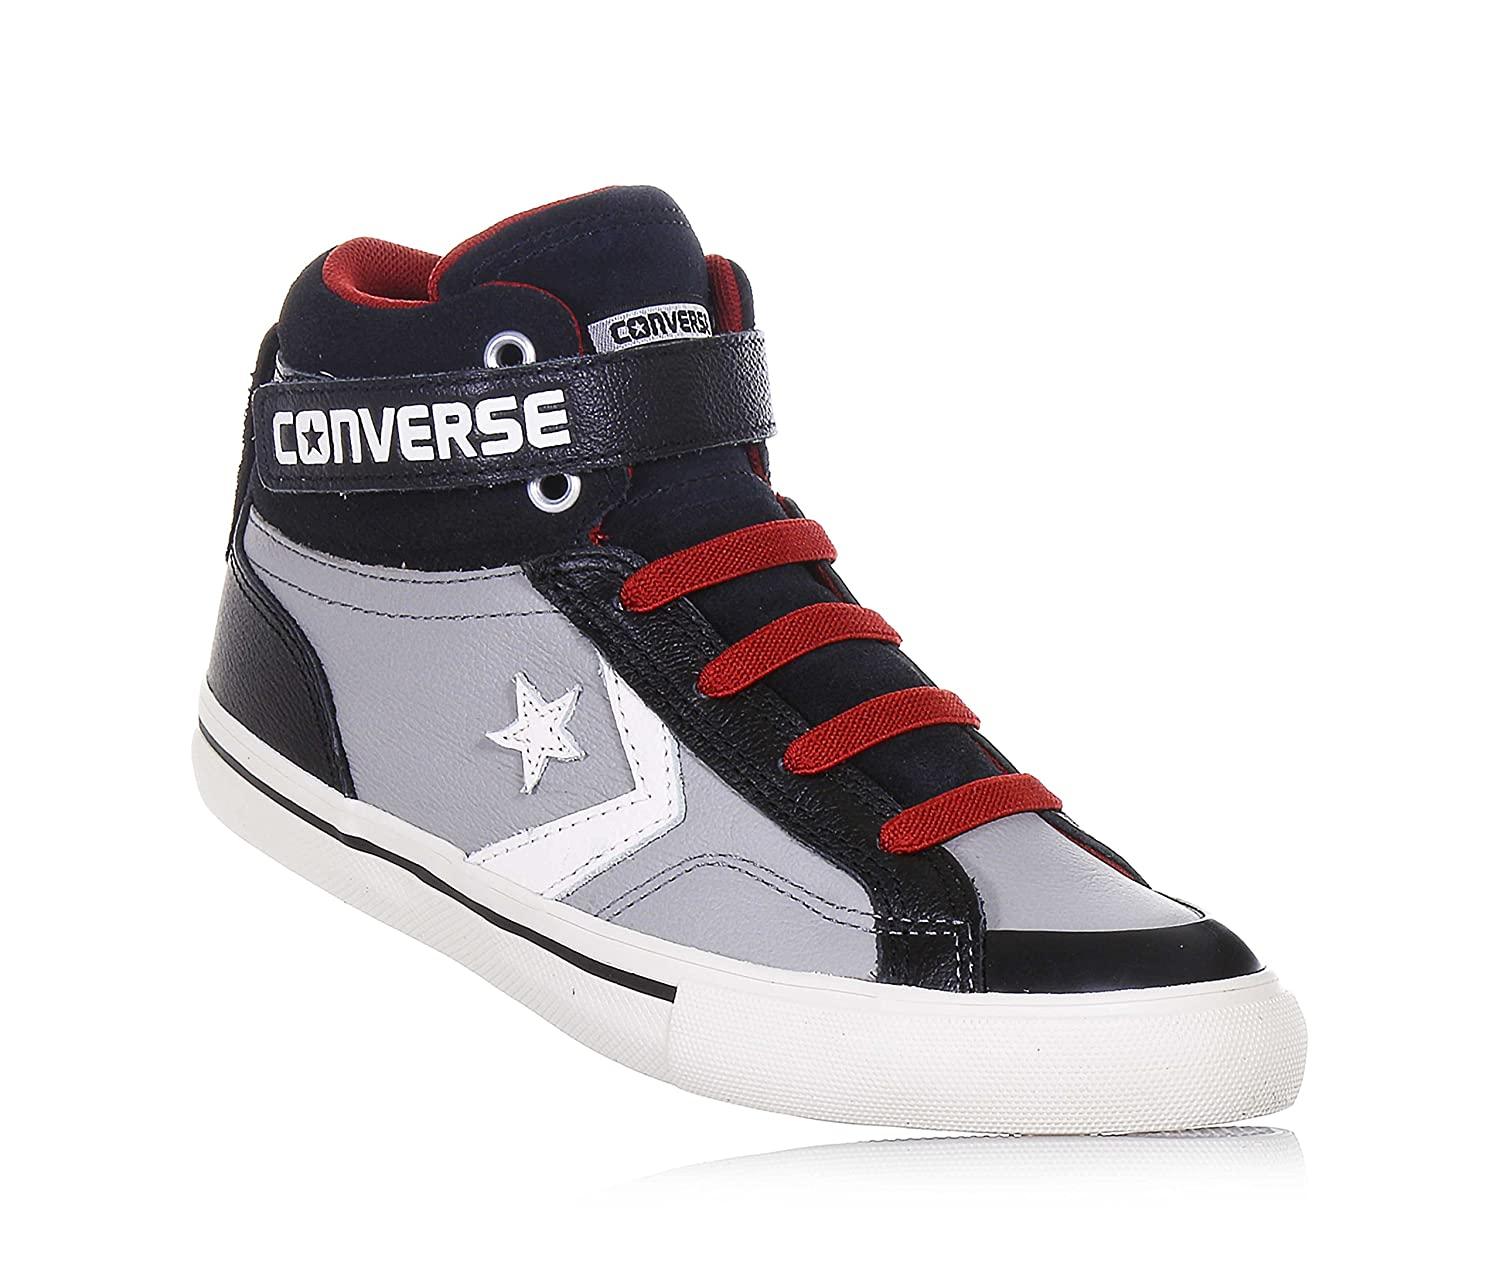 7d120b2c0970 CONVERSE 658884C PRO BLAZE SNEAKERS GREY BLACK 35  Amazon.co.uk  Shoes    Bags